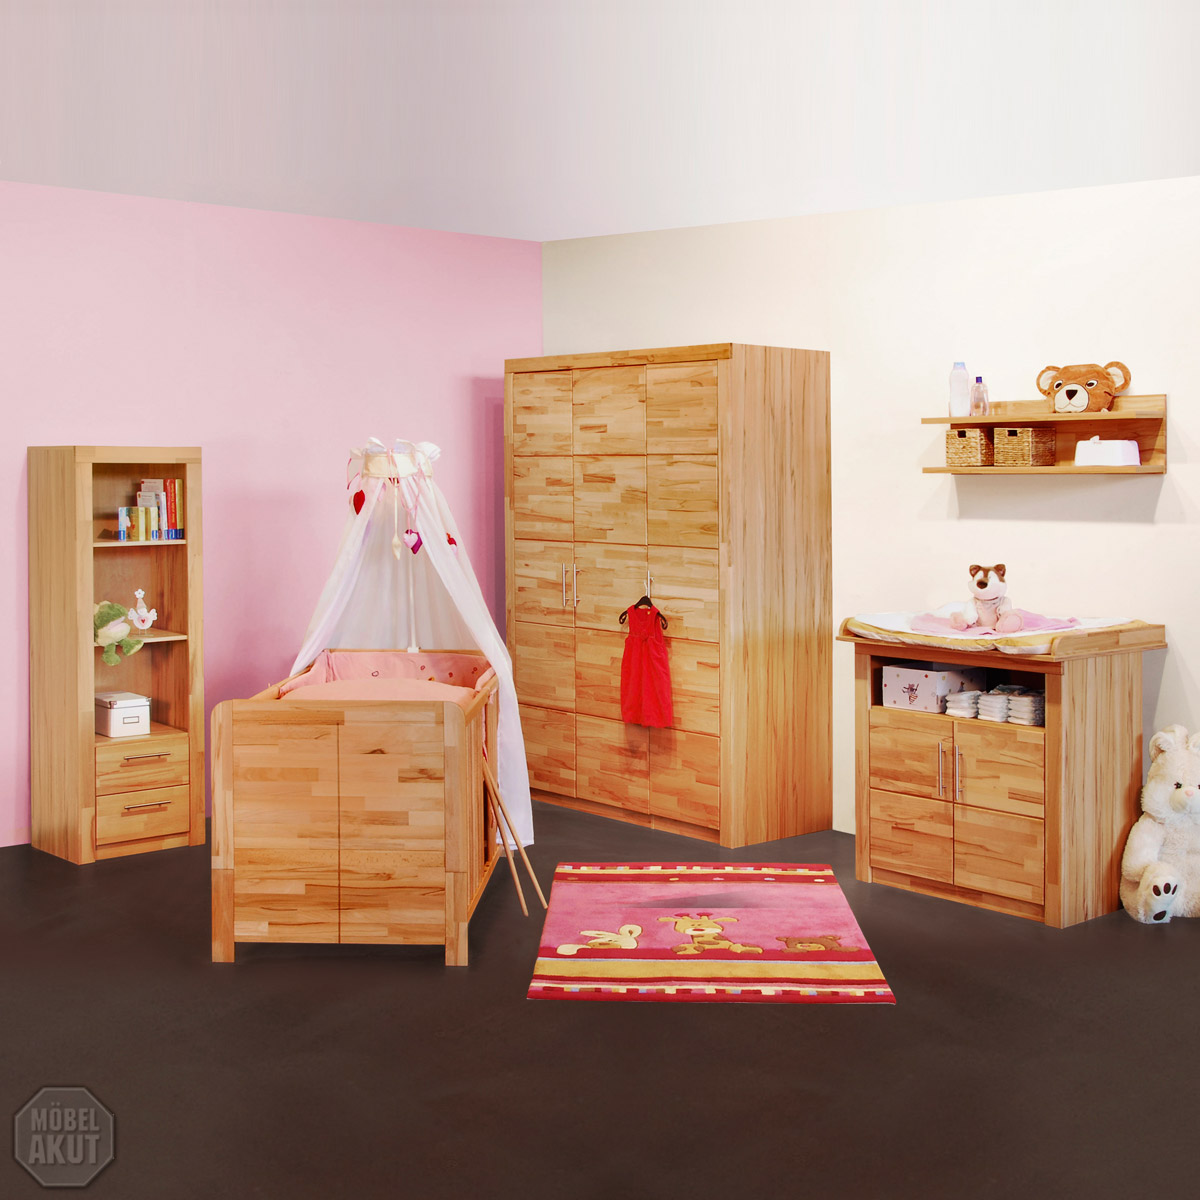 5 tlg babyzimmer set berlin kinderzimmer schrank bett regal kommode kern buche ebay. Black Bedroom Furniture Sets. Home Design Ideas